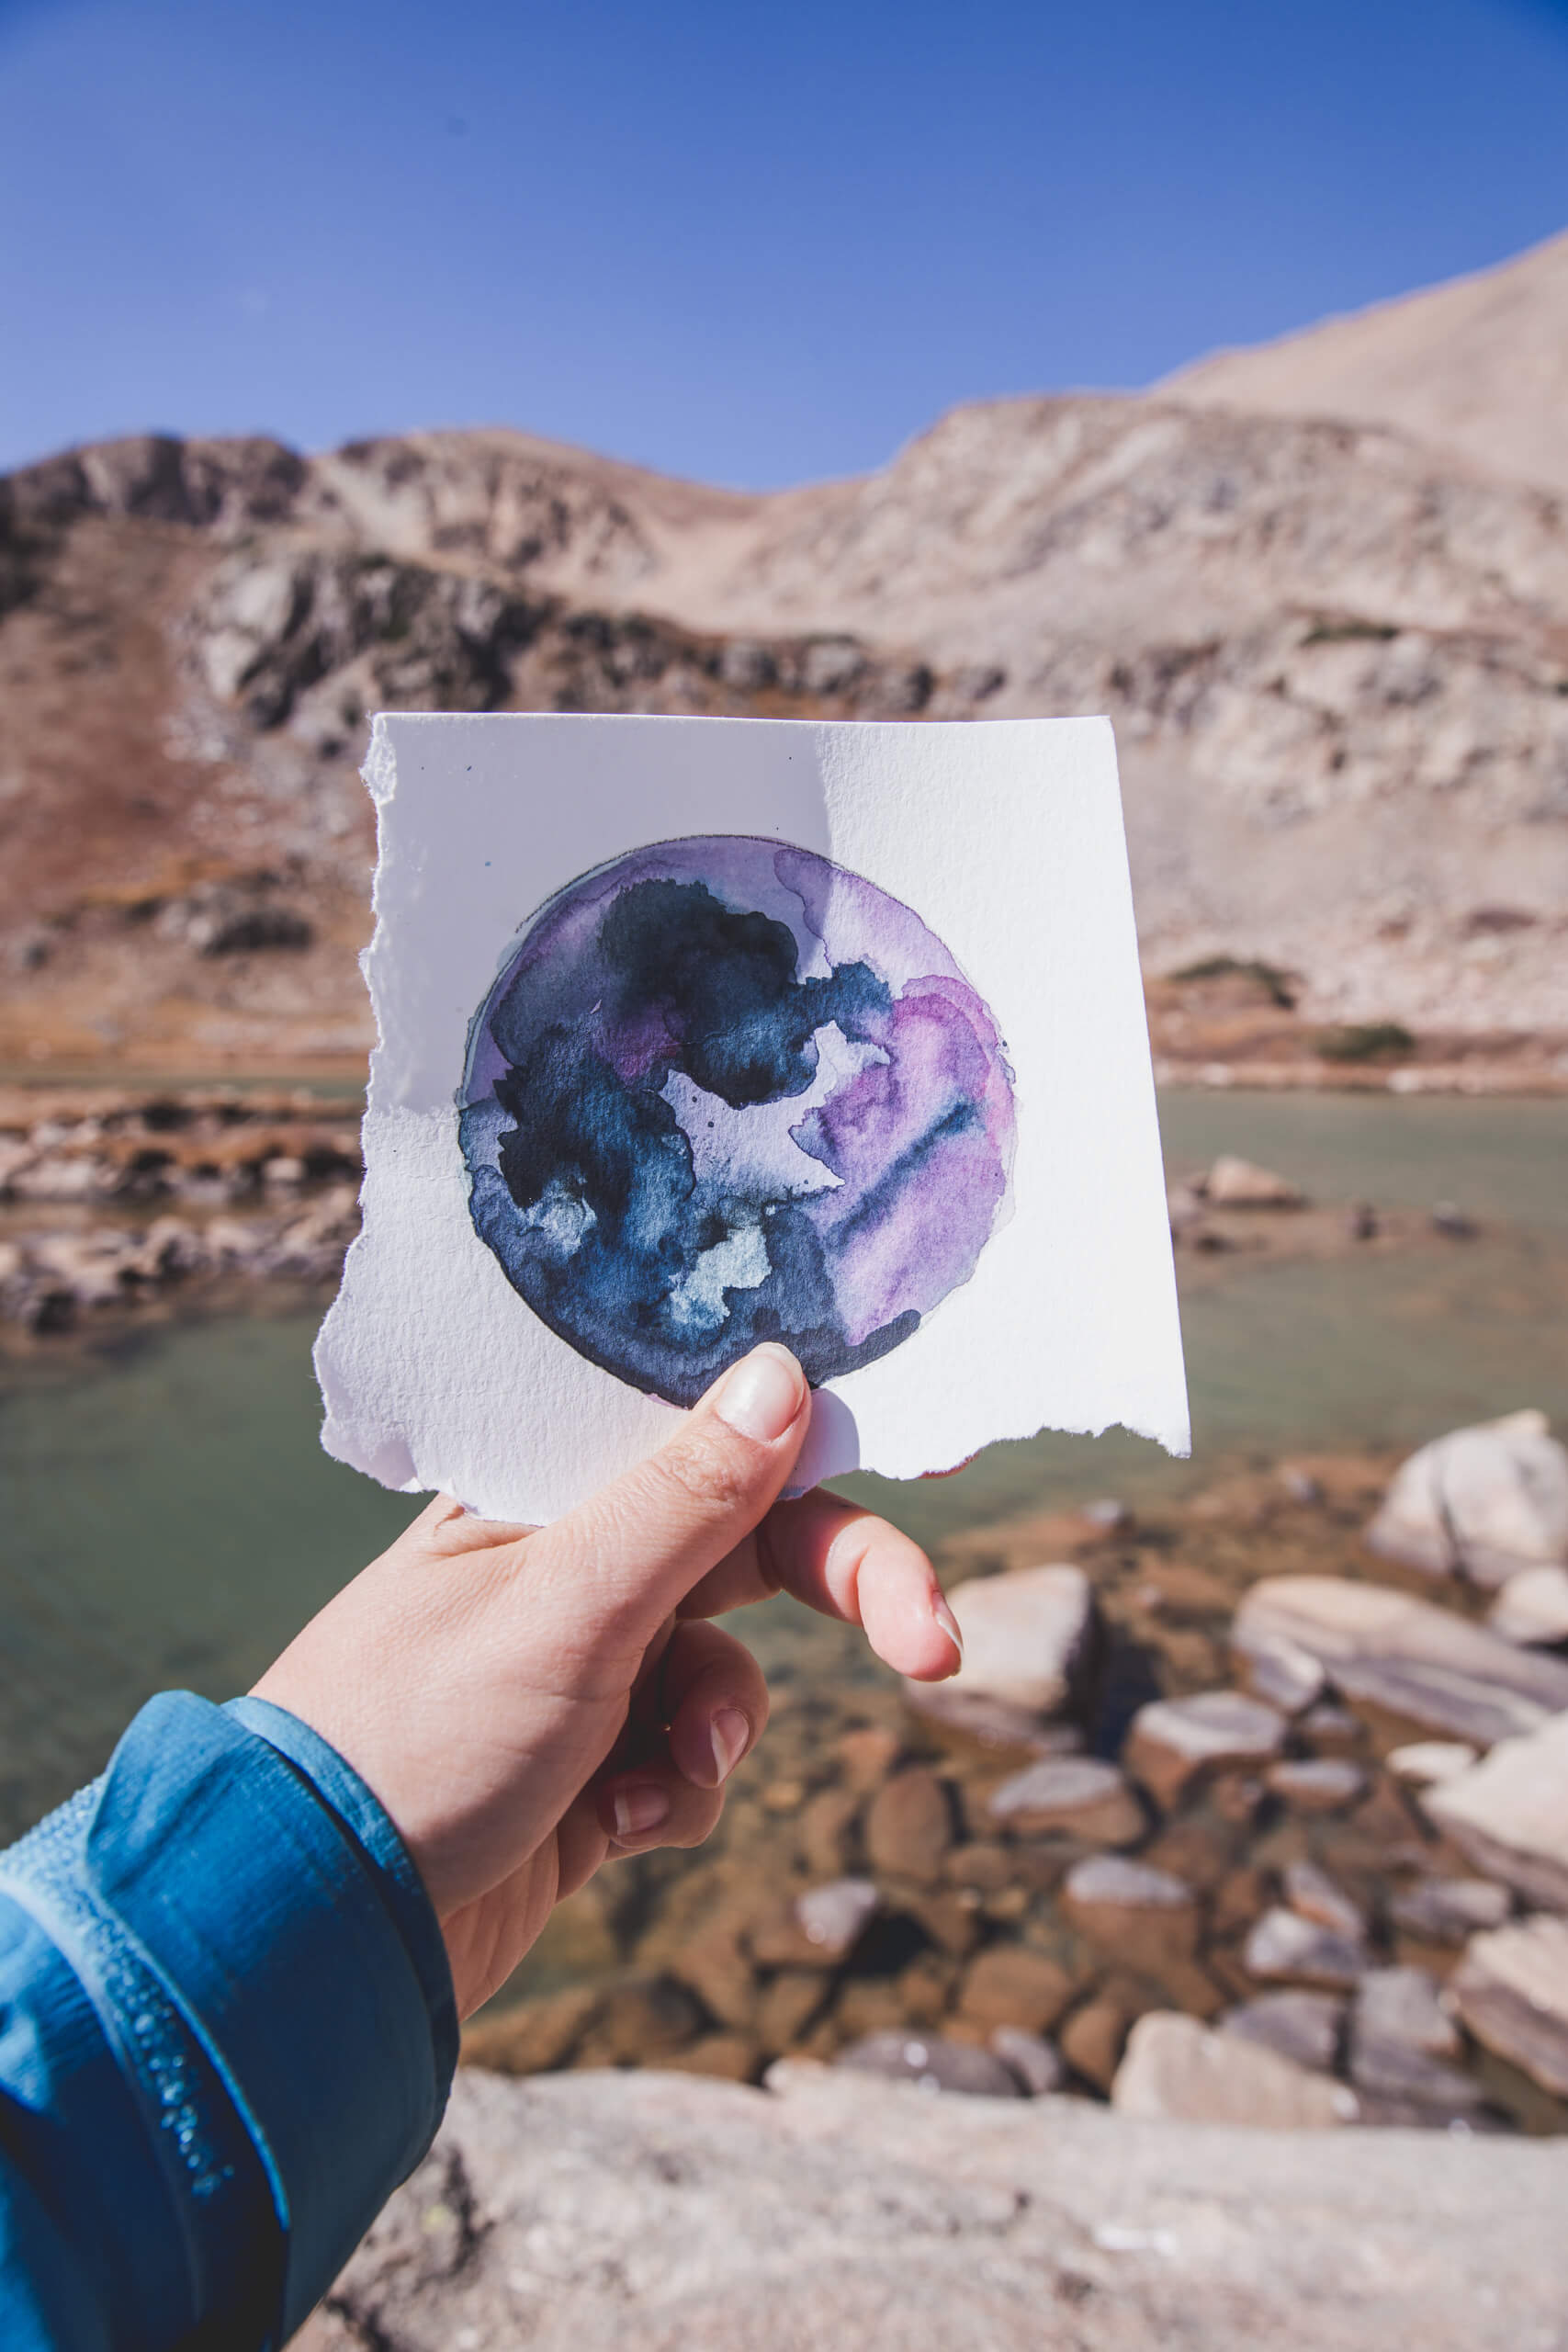 A hand holding a square watercolor planet painted with blue, purple, and black colors with a green lake and mountains in the background